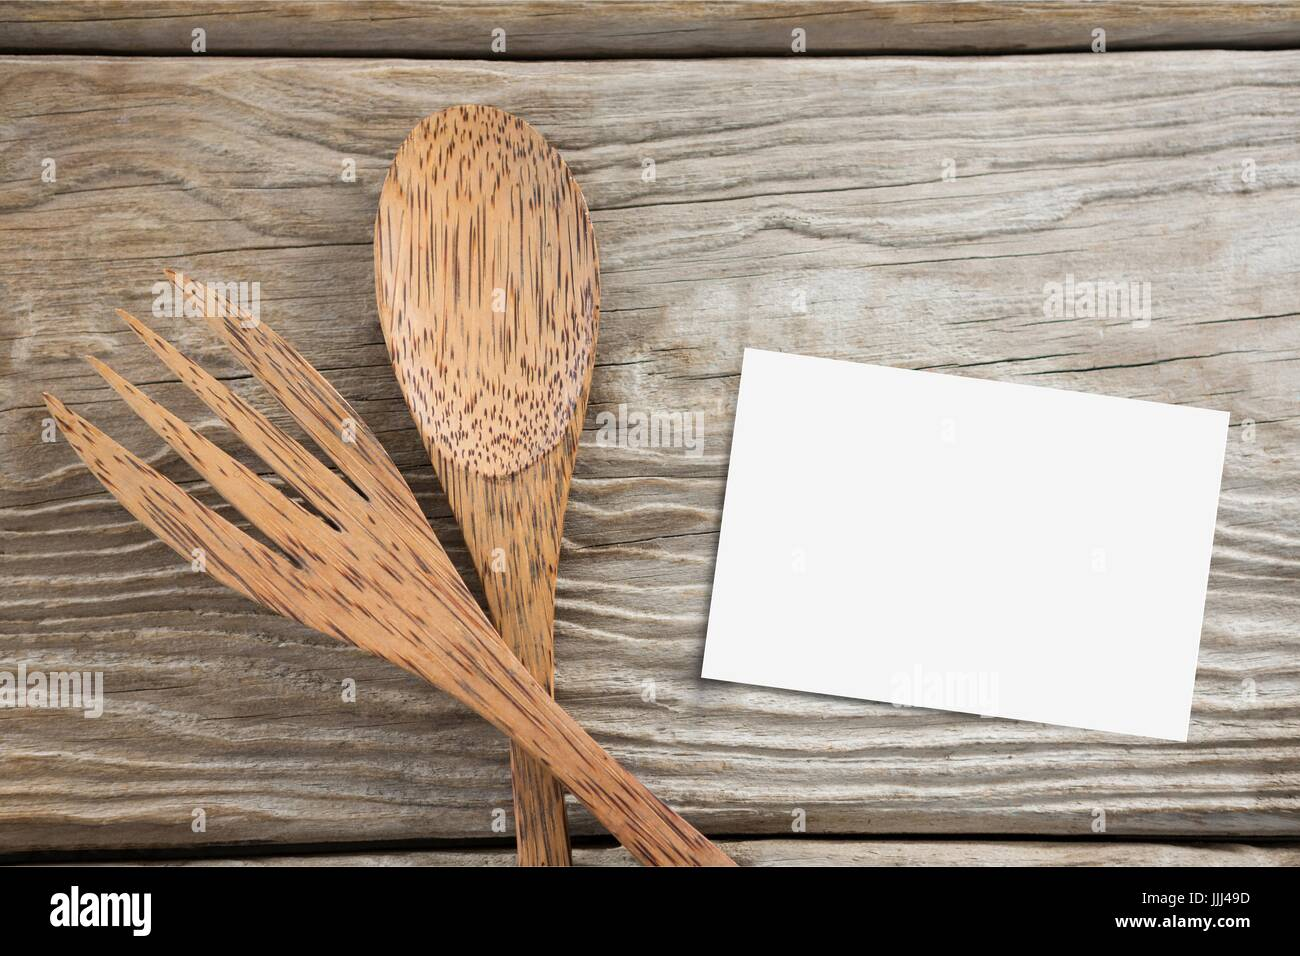 Copy space on a bussiness card on wooden desk Stock Photo